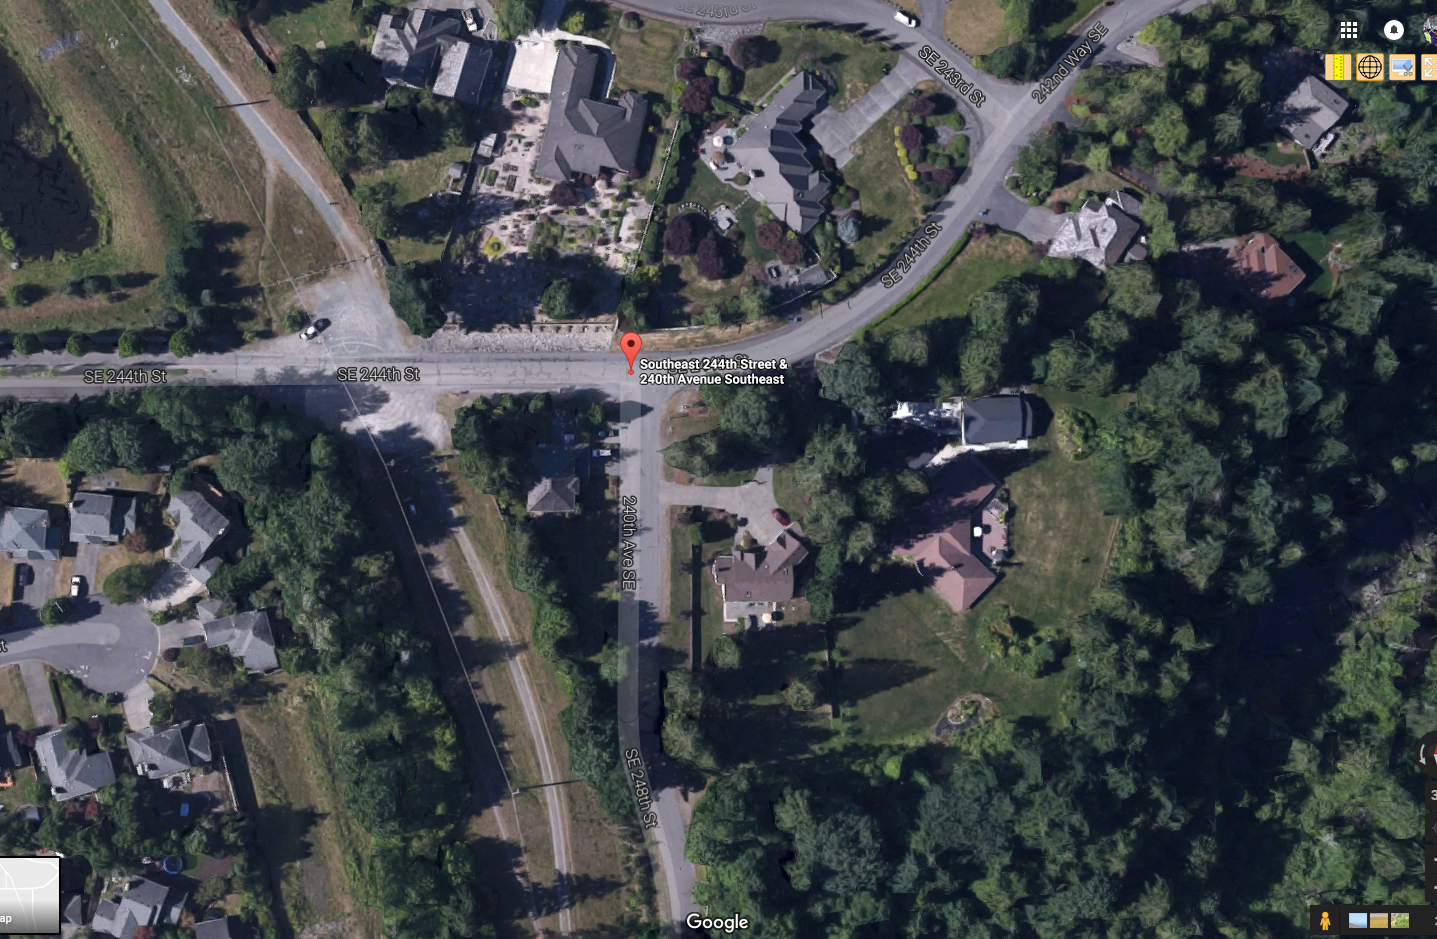 We are meeting at the trail that is about 1/2 block before the intersection in the address